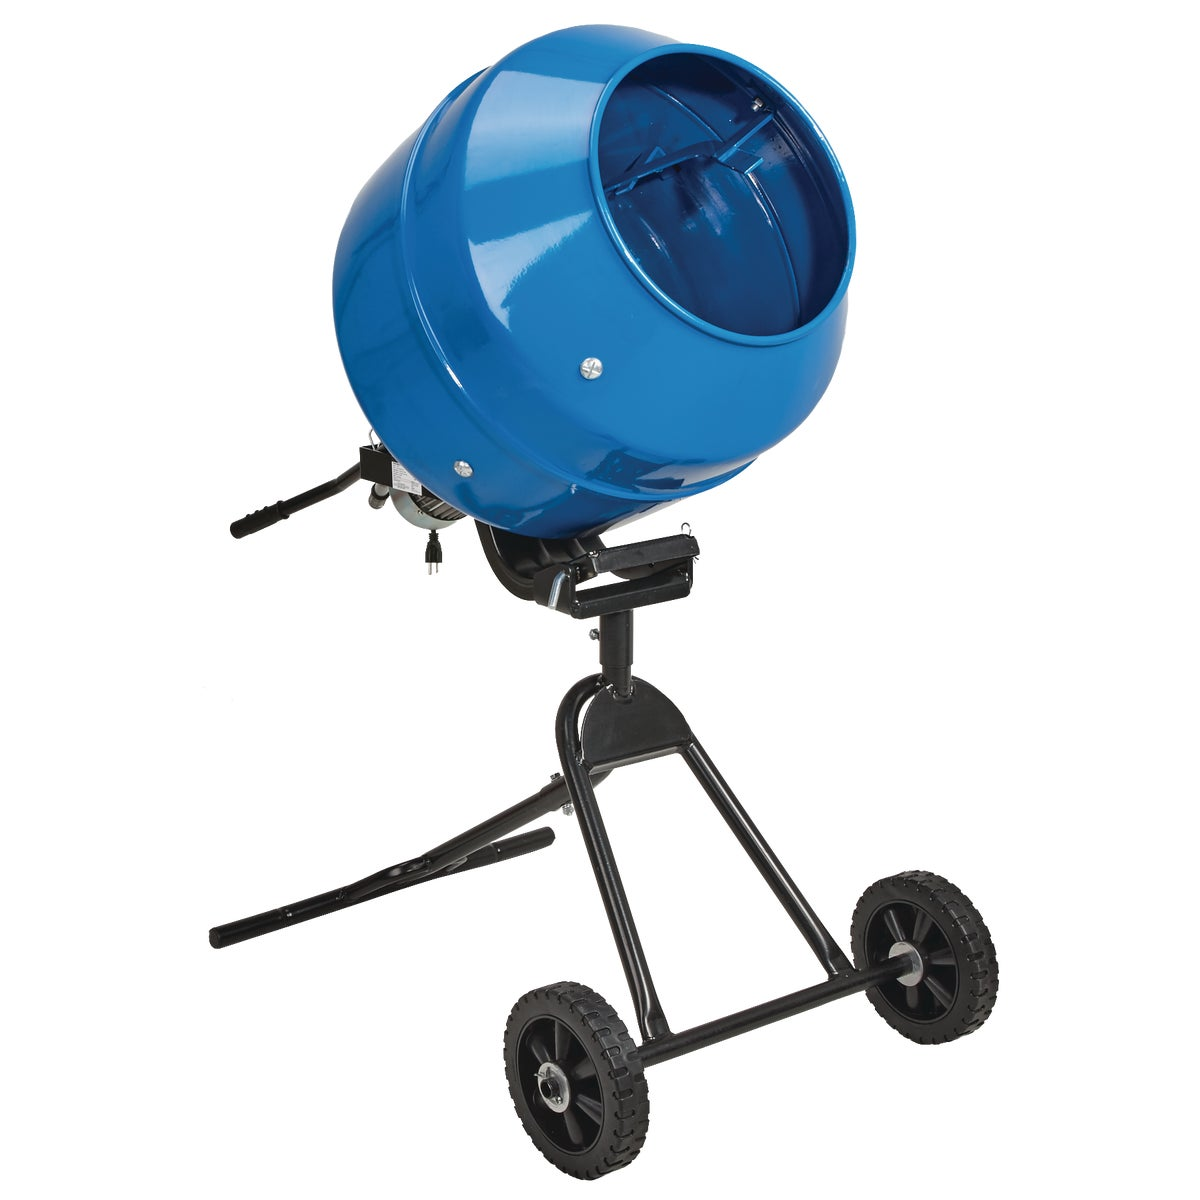 PORTABLE CEMENT MIXER - 1169-0 by King Tool 0quipment